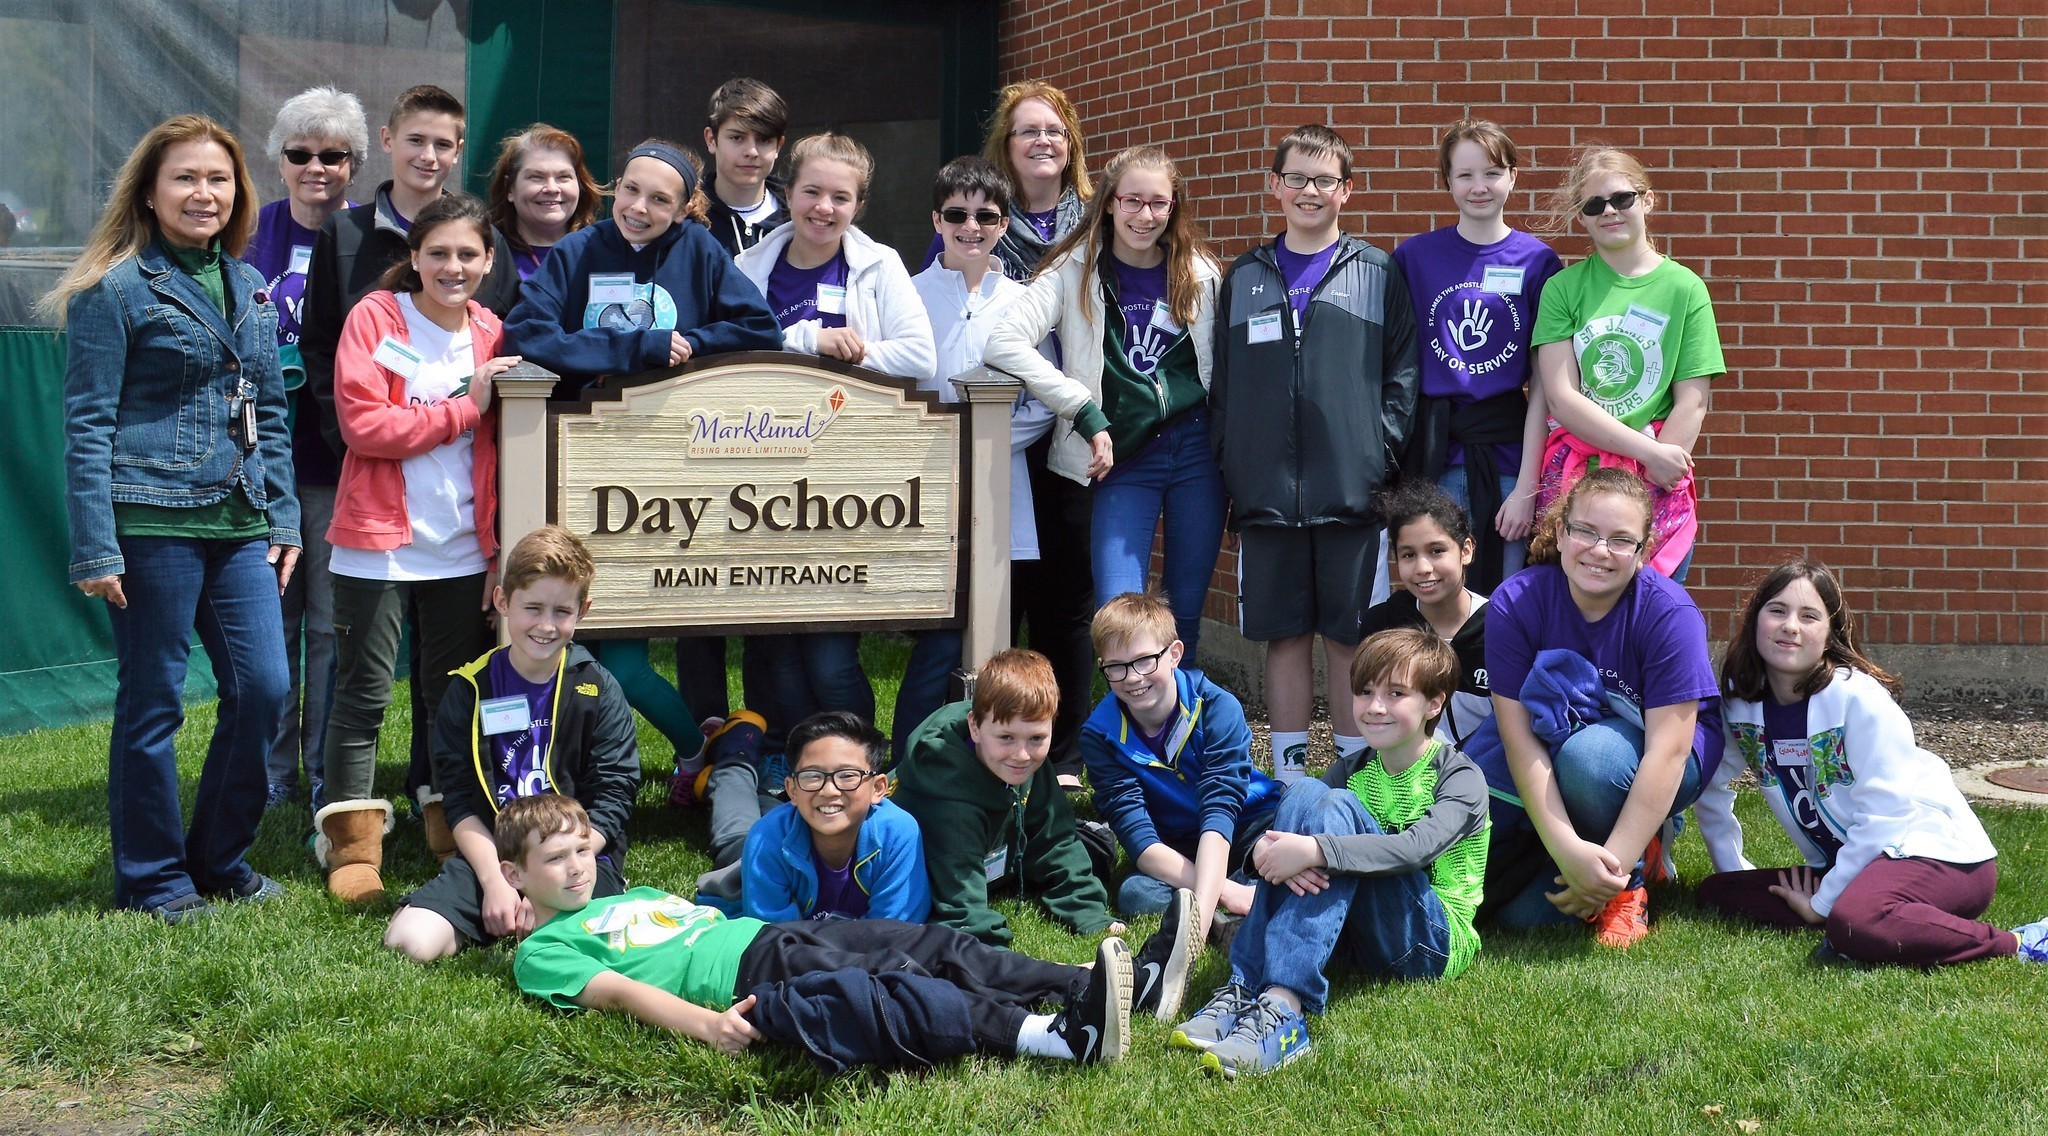 Students From Marklund Day School And St. James The Apostle Catholic School  Come Together For Day Of Fun   Chicago Tribune